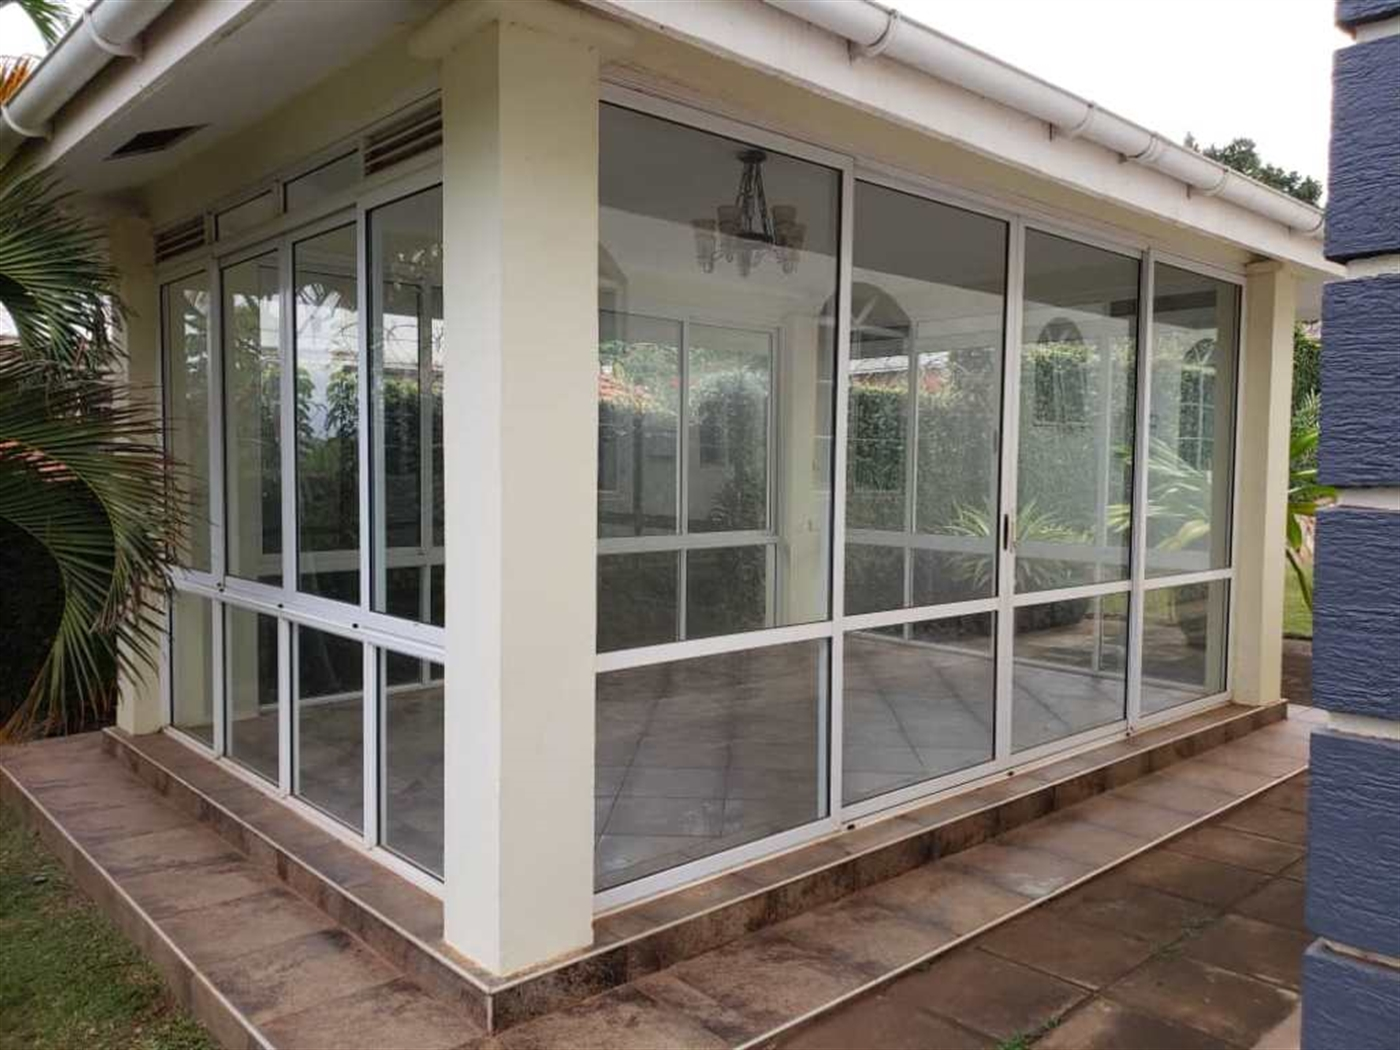 Maisonette for rent in Mutungo Kampala